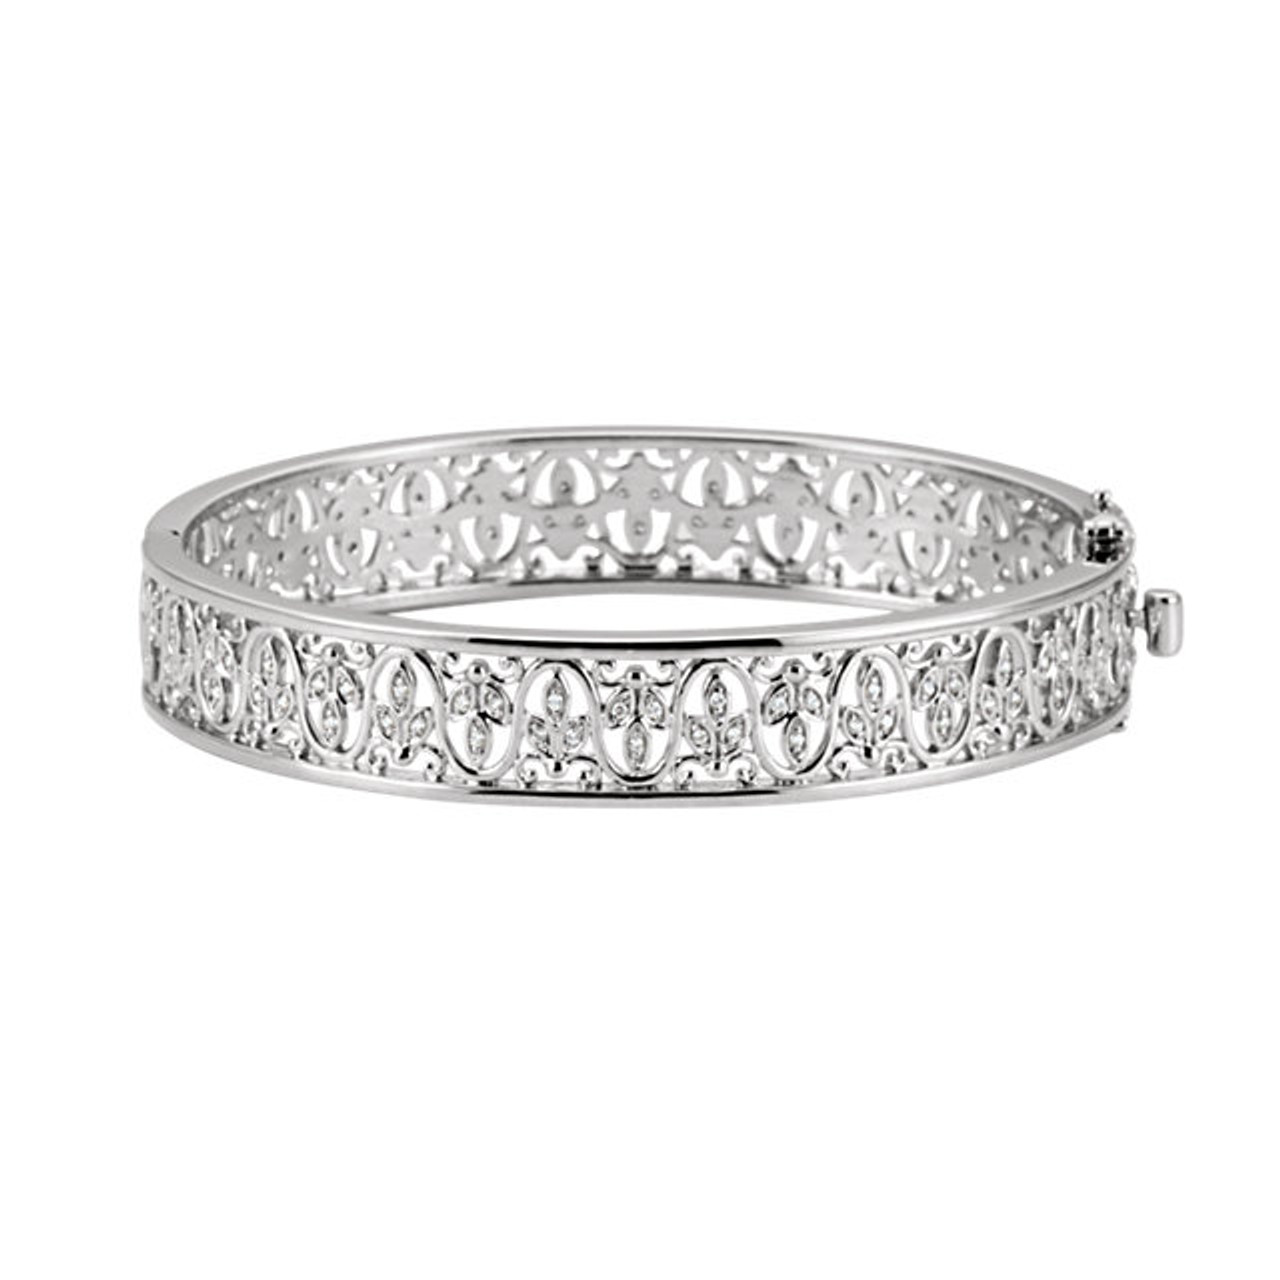 bracelet best eternity diamond pinterest womens pandora on bangle images charm diamonds jewelry bracelets nimpijarn bangles